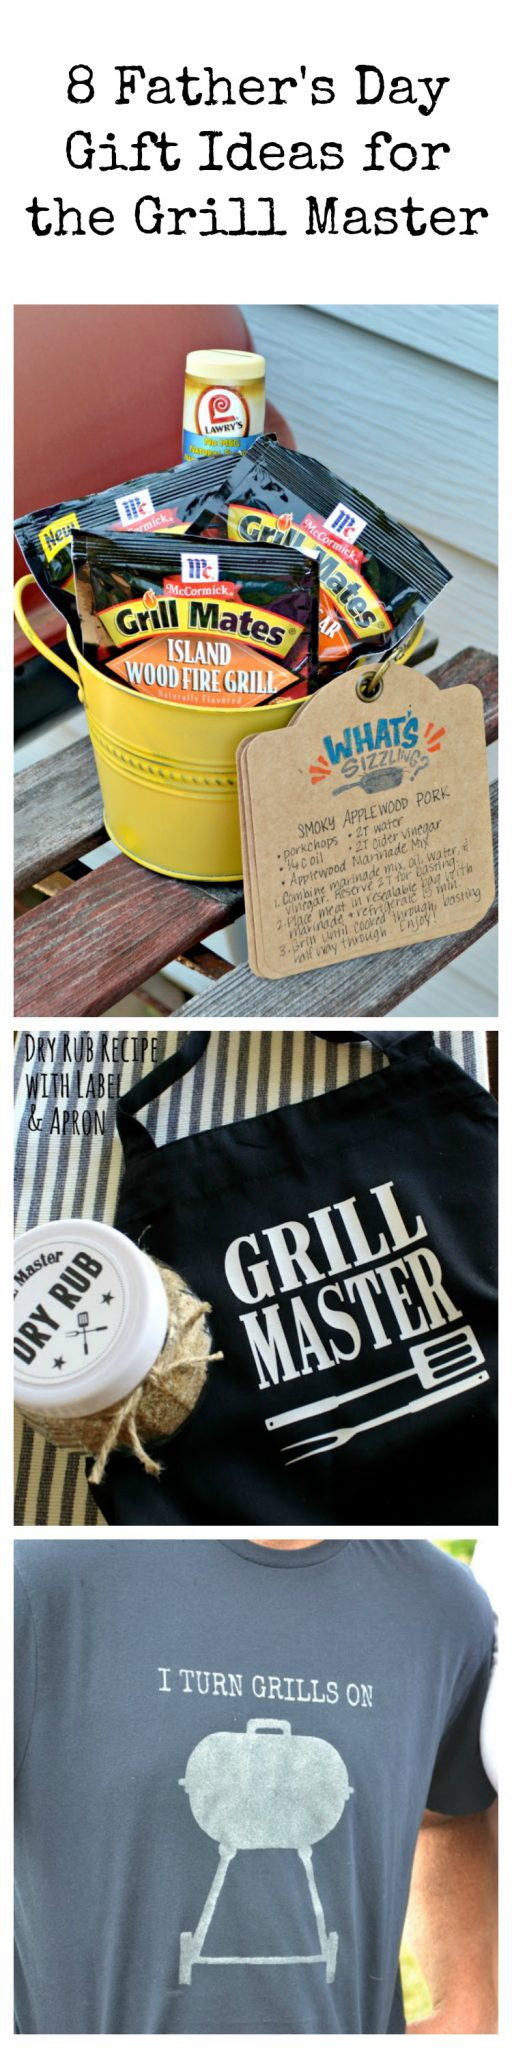 Father's Day Gifts: Grilling